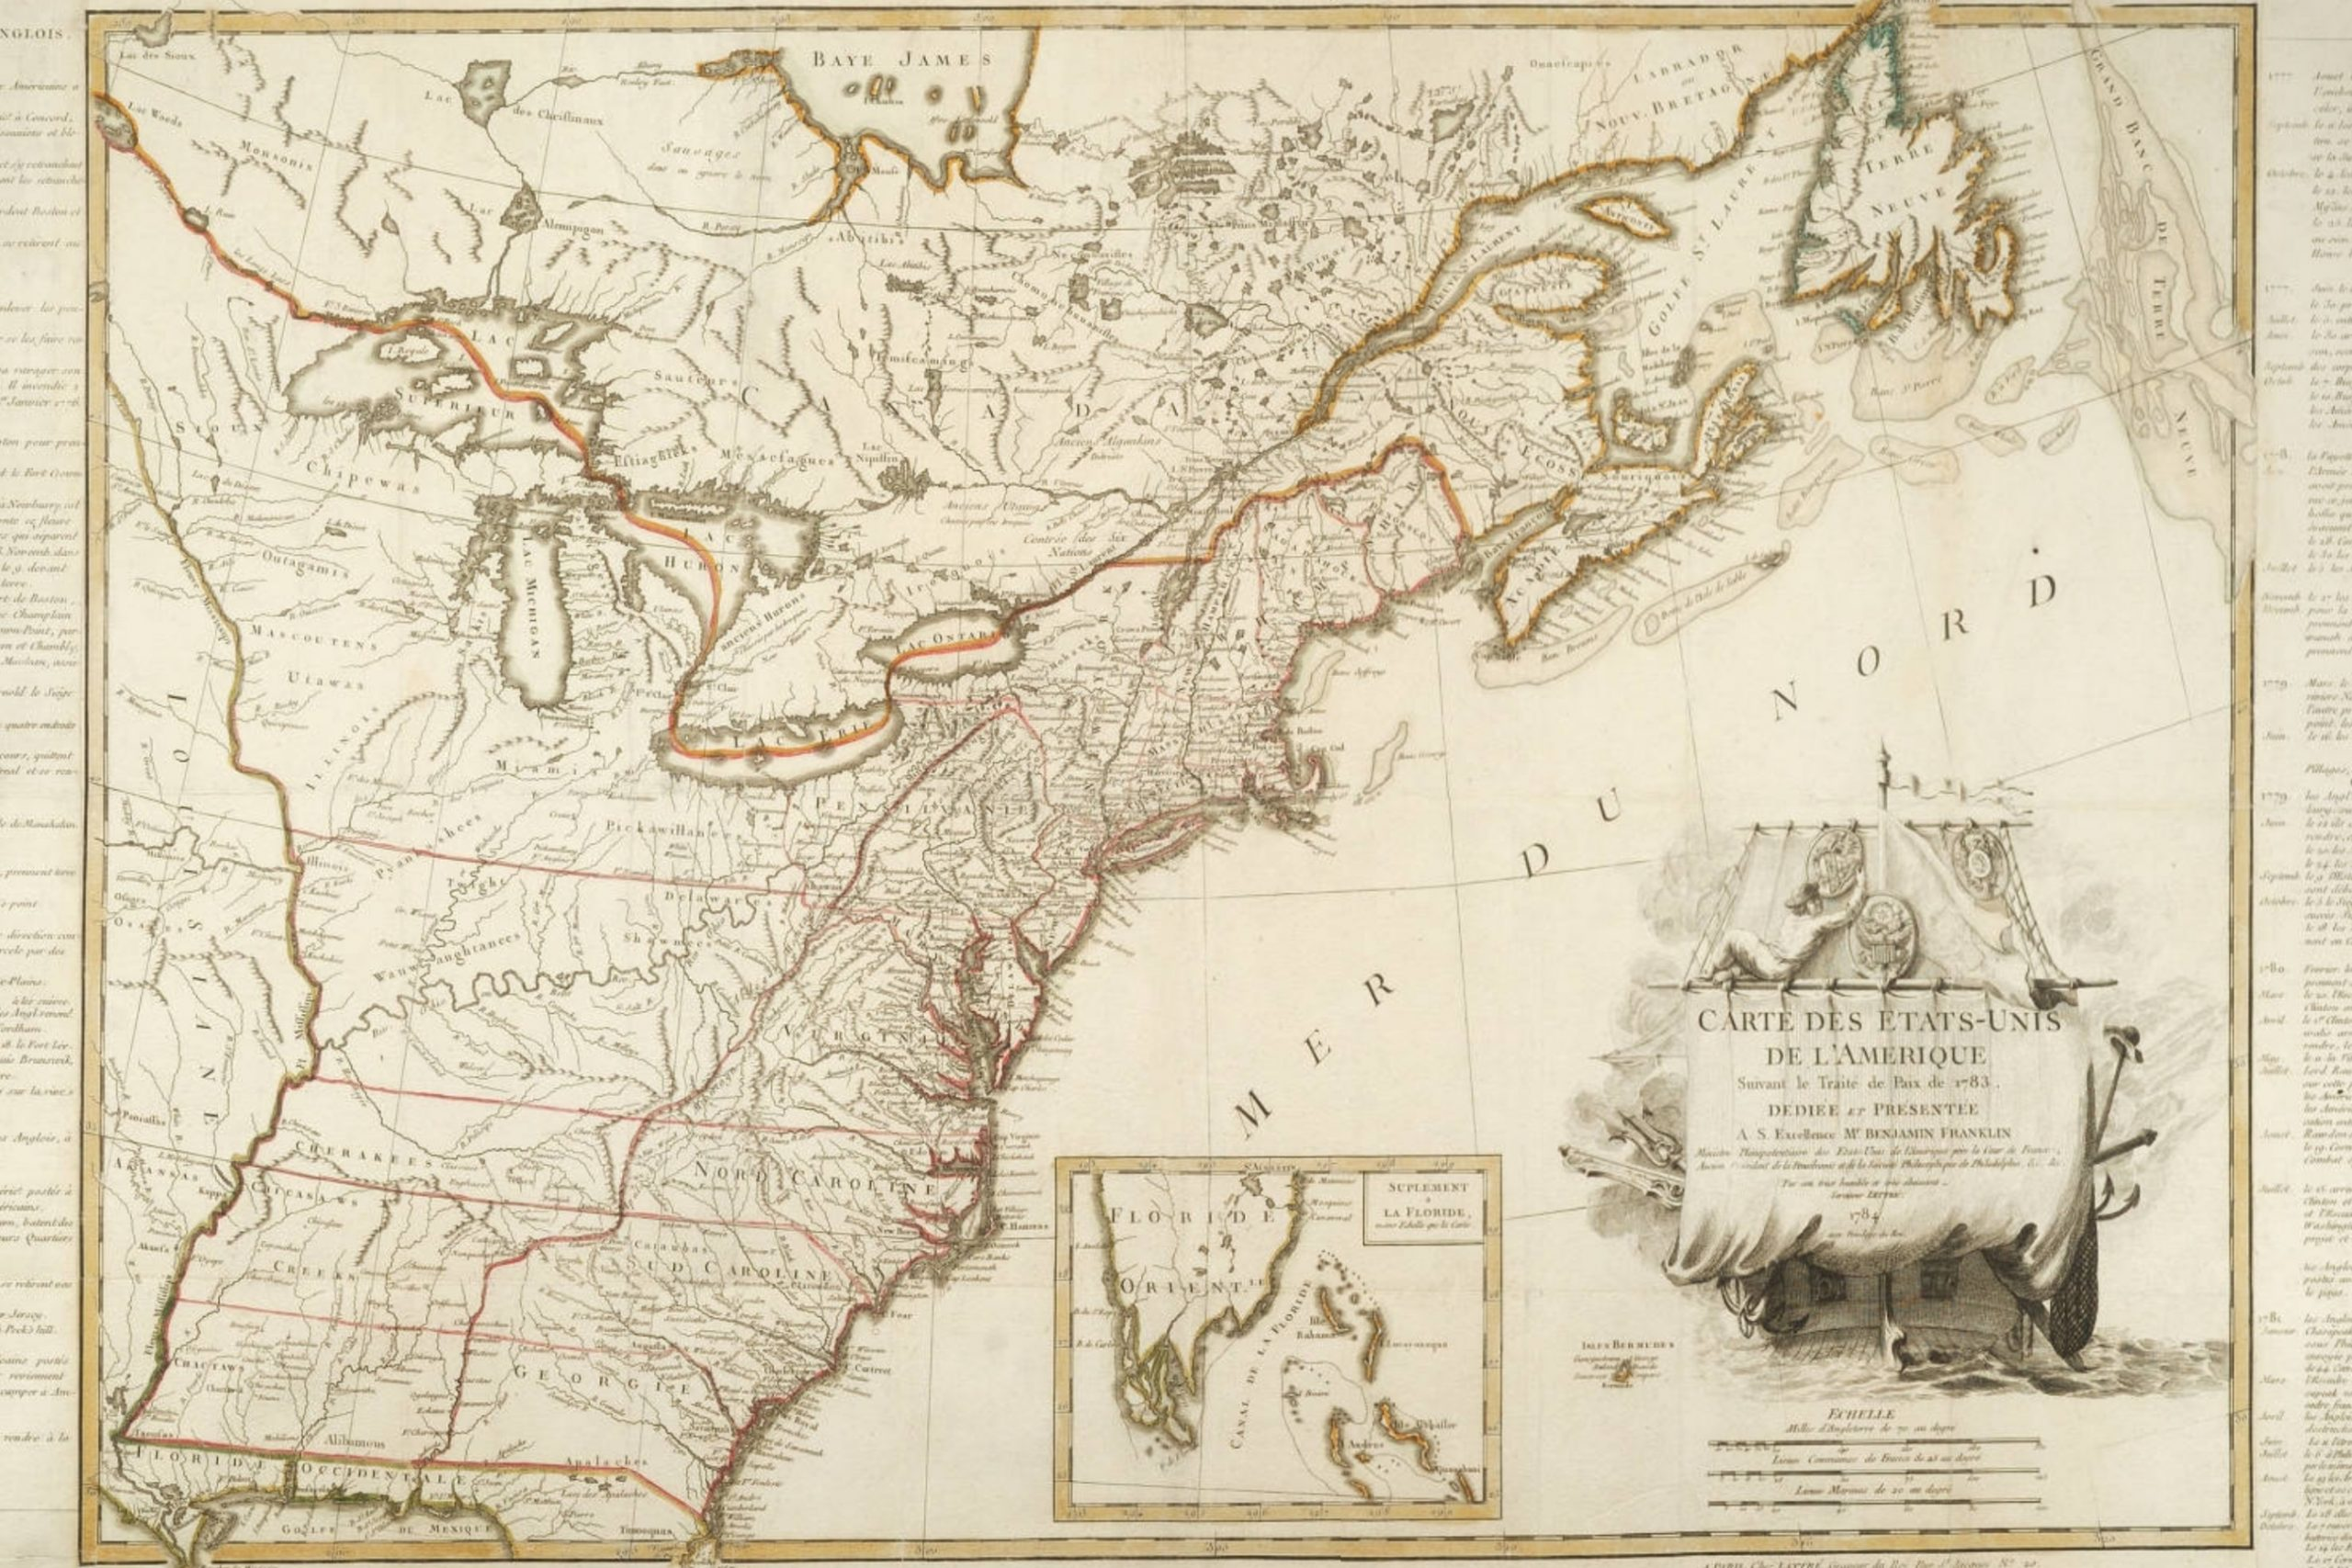 This 1784 map of the United States published in France is one of ten great Revolutionary War maps.